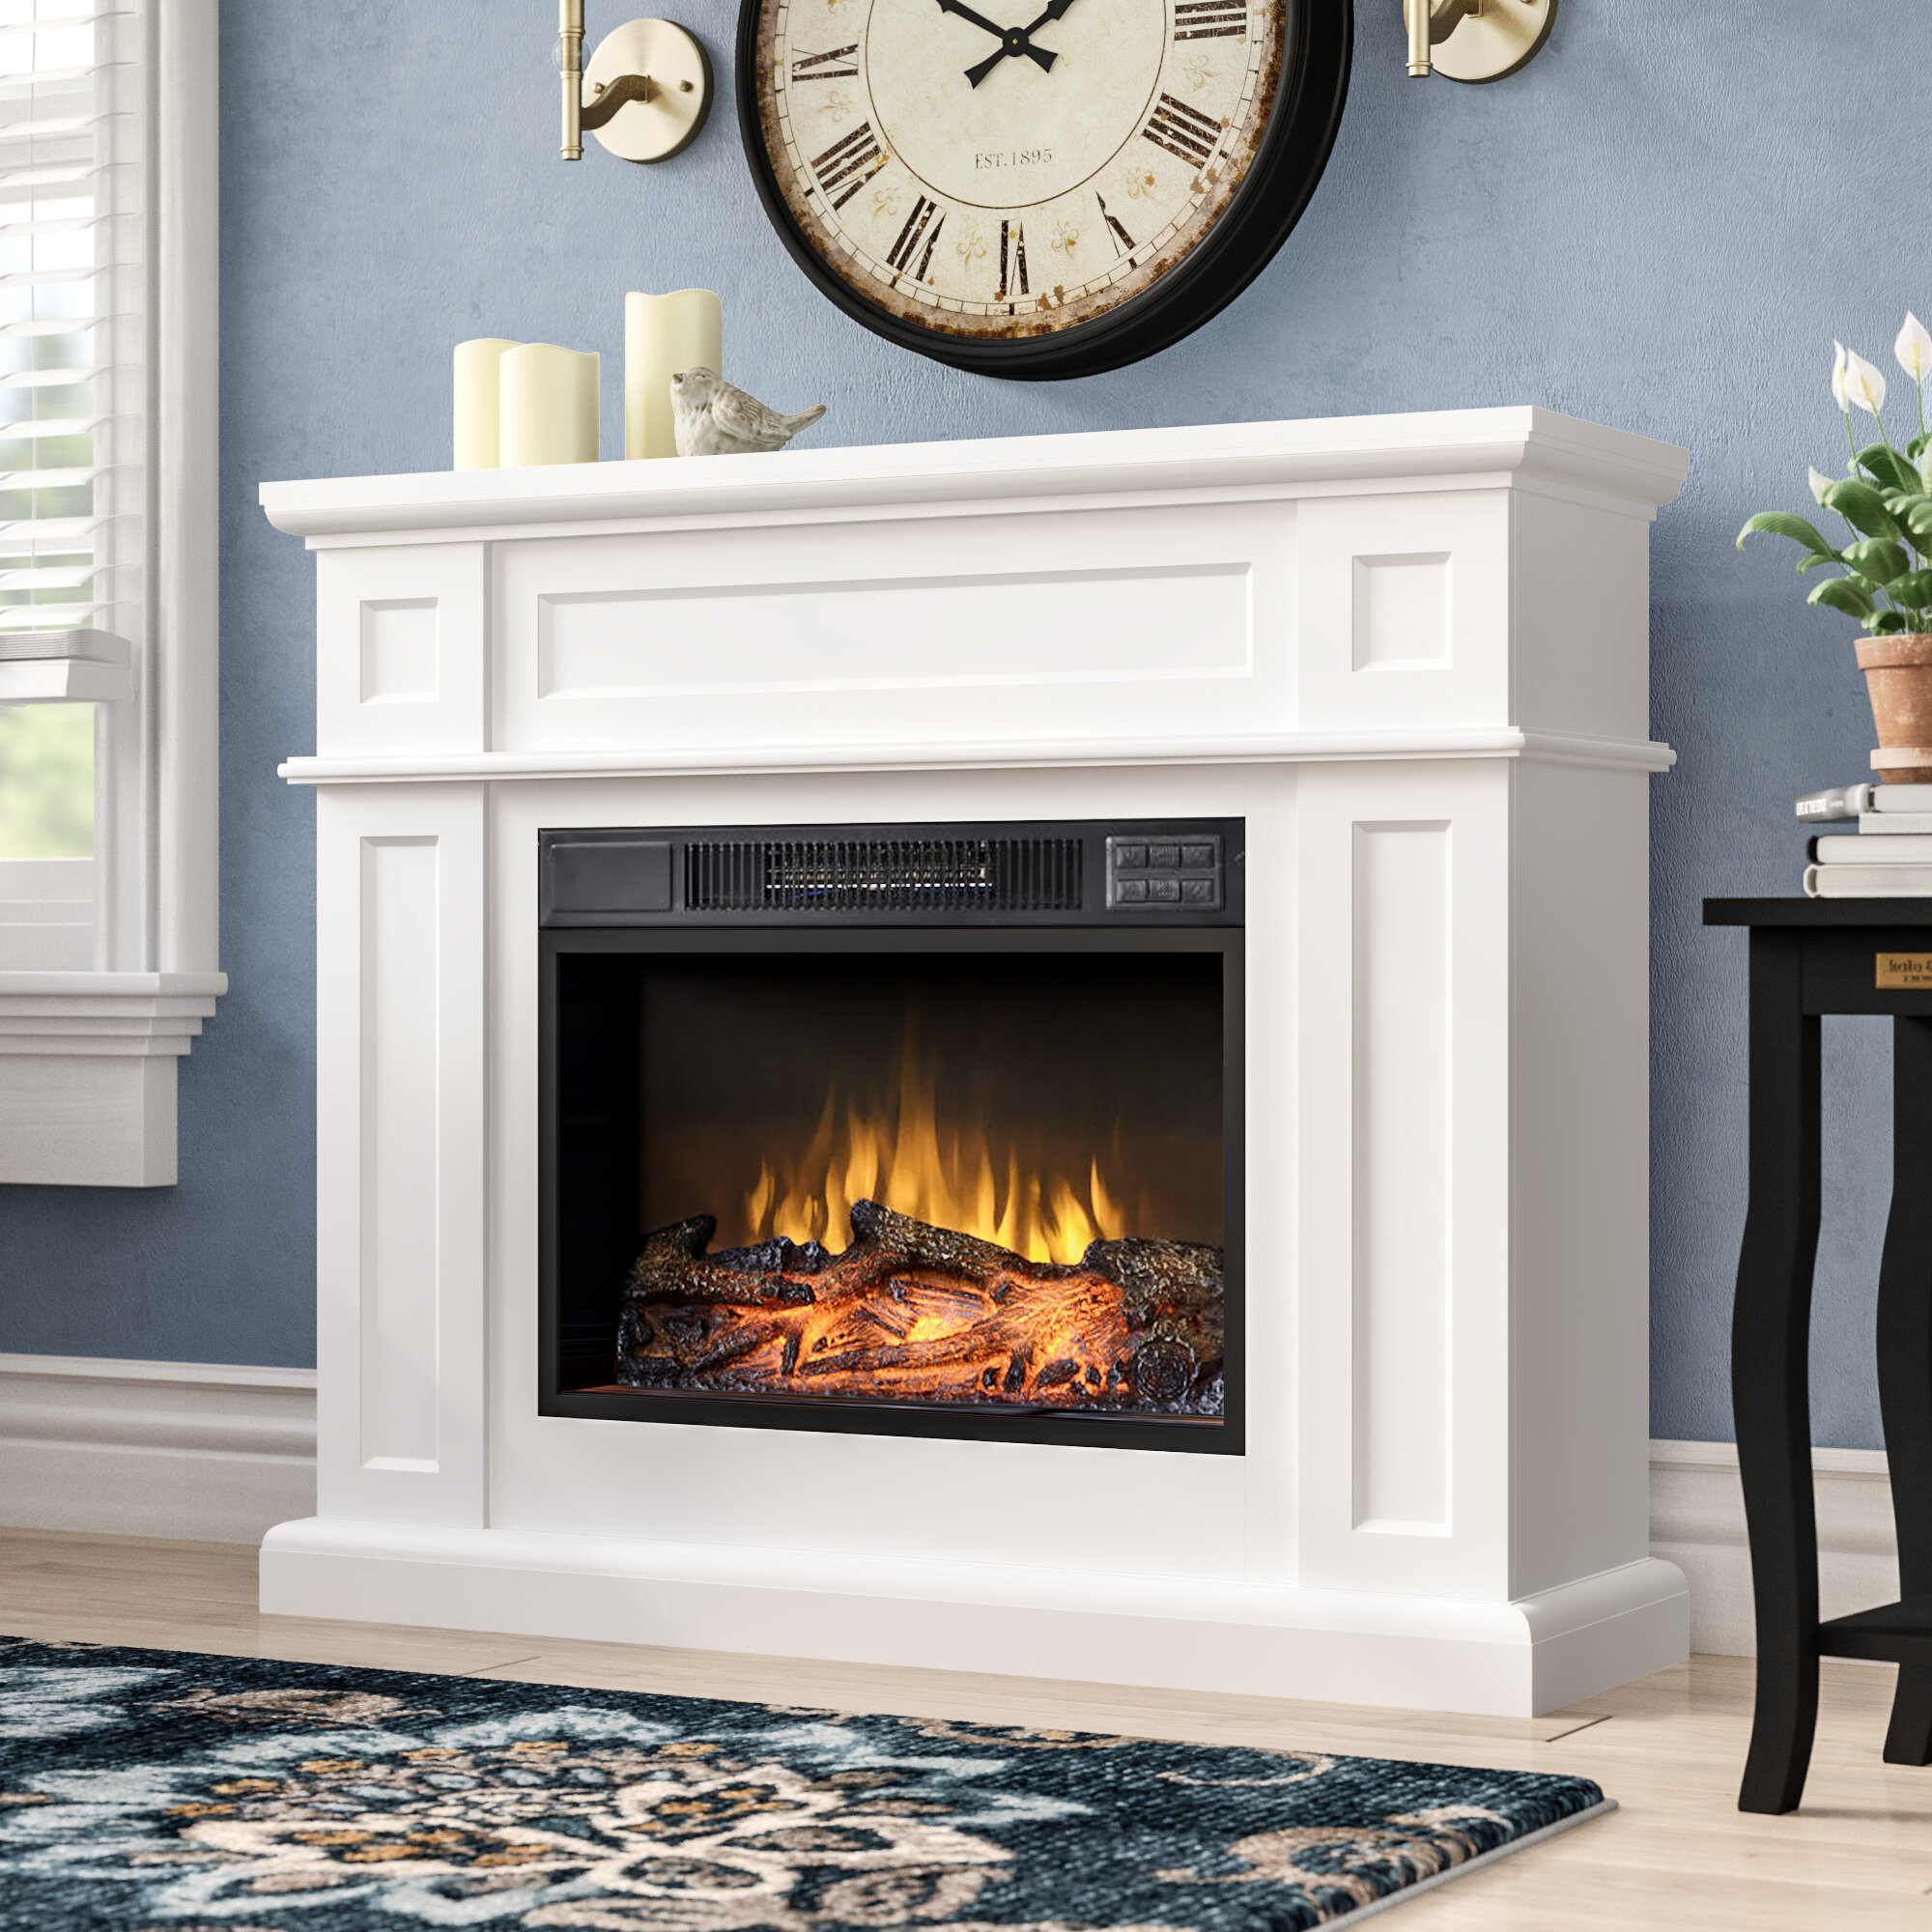 fireglass is category ash and valcourt big s exception the none wood manoir second media are doors good fireplace another their fireplaces example to of